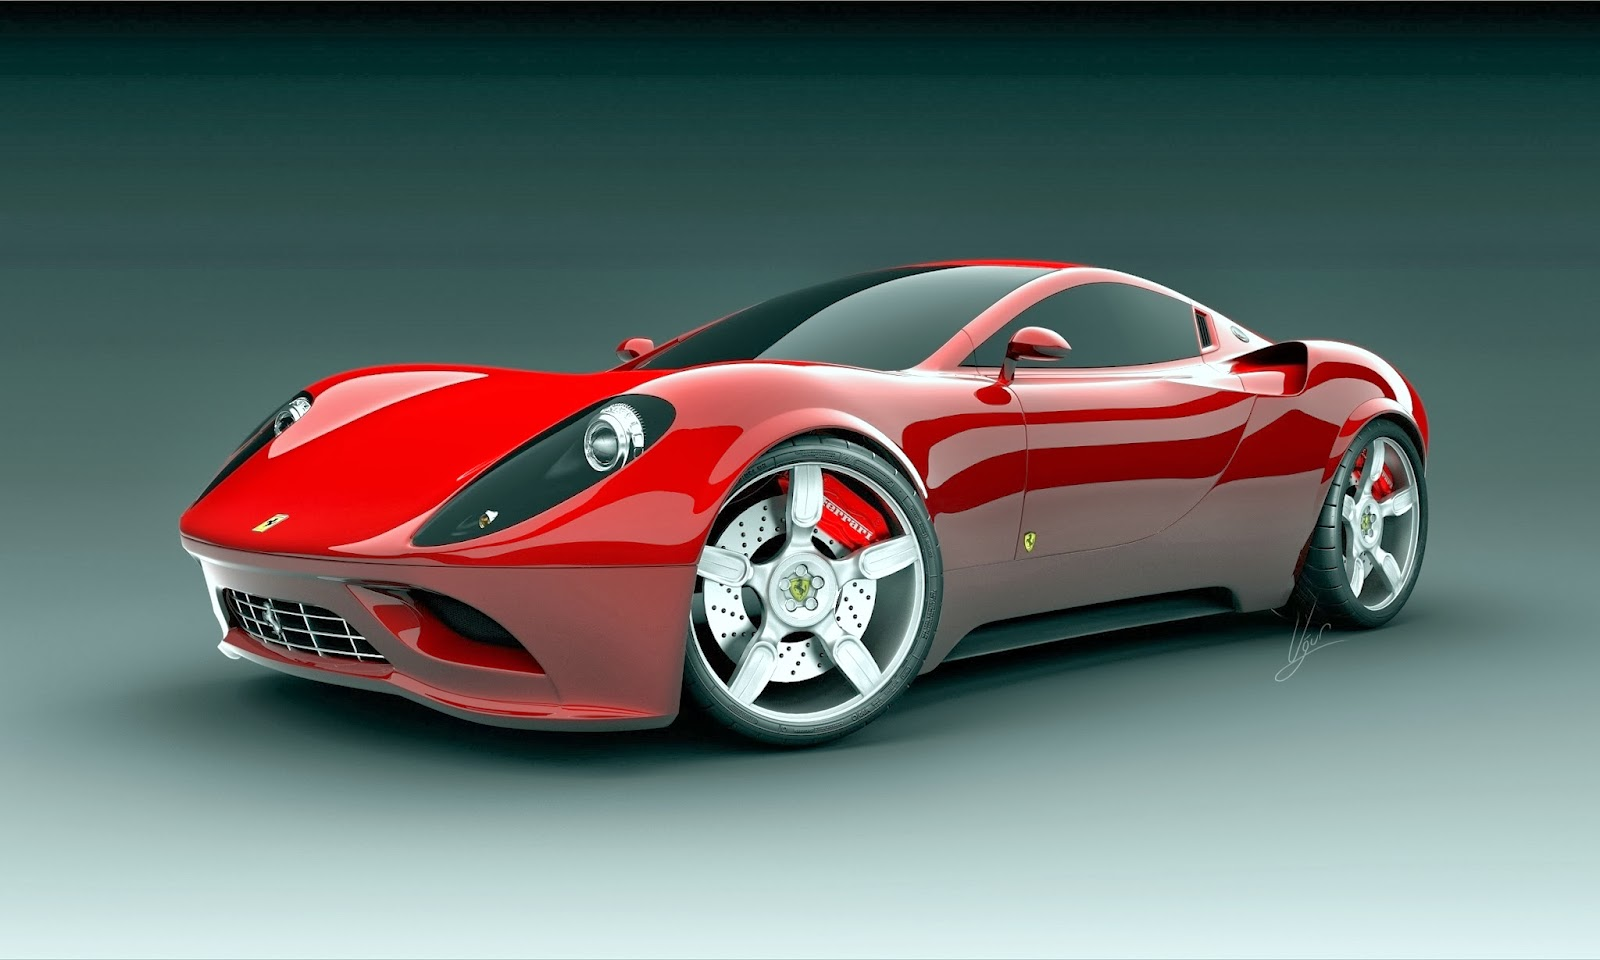 free photos of exotic sports cars